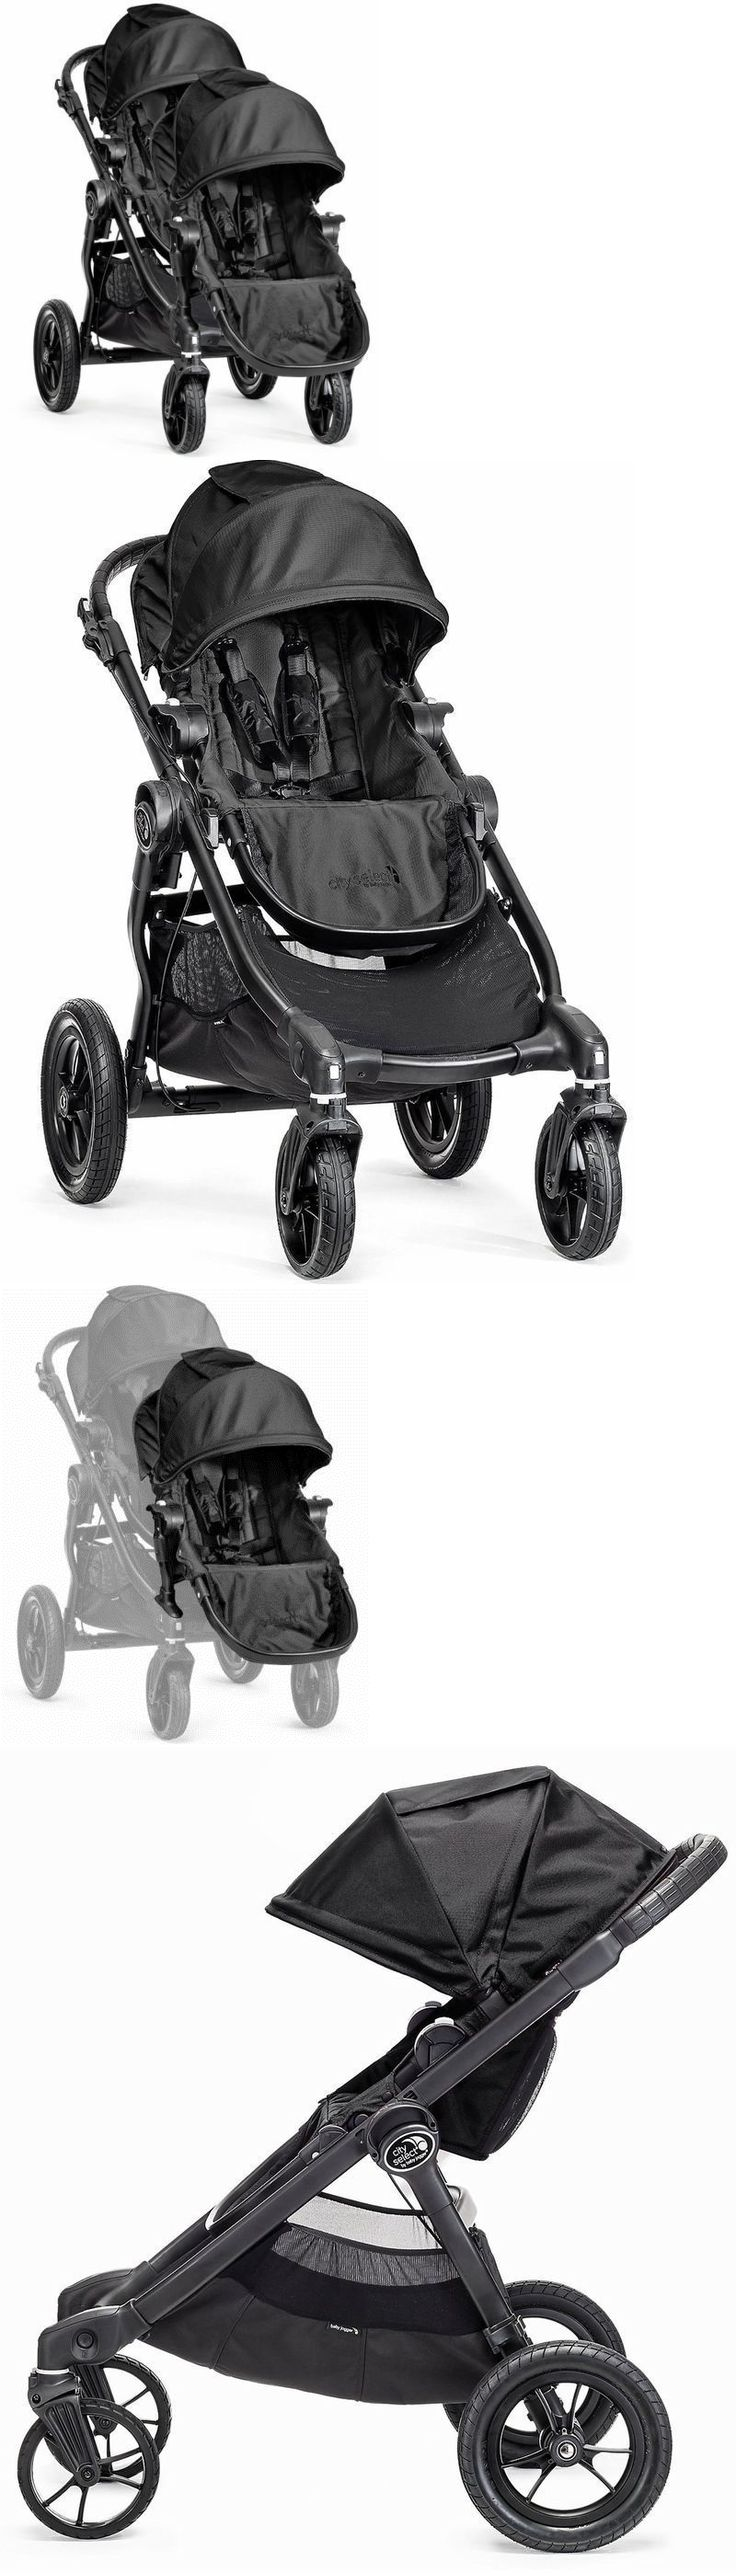 Other Baby Gear 100224: Baby Jogger City Select Twin Tandem Double Stroller Black With Second Seat New -> BUY IT NOW ONLY: $569.98 on eBay!